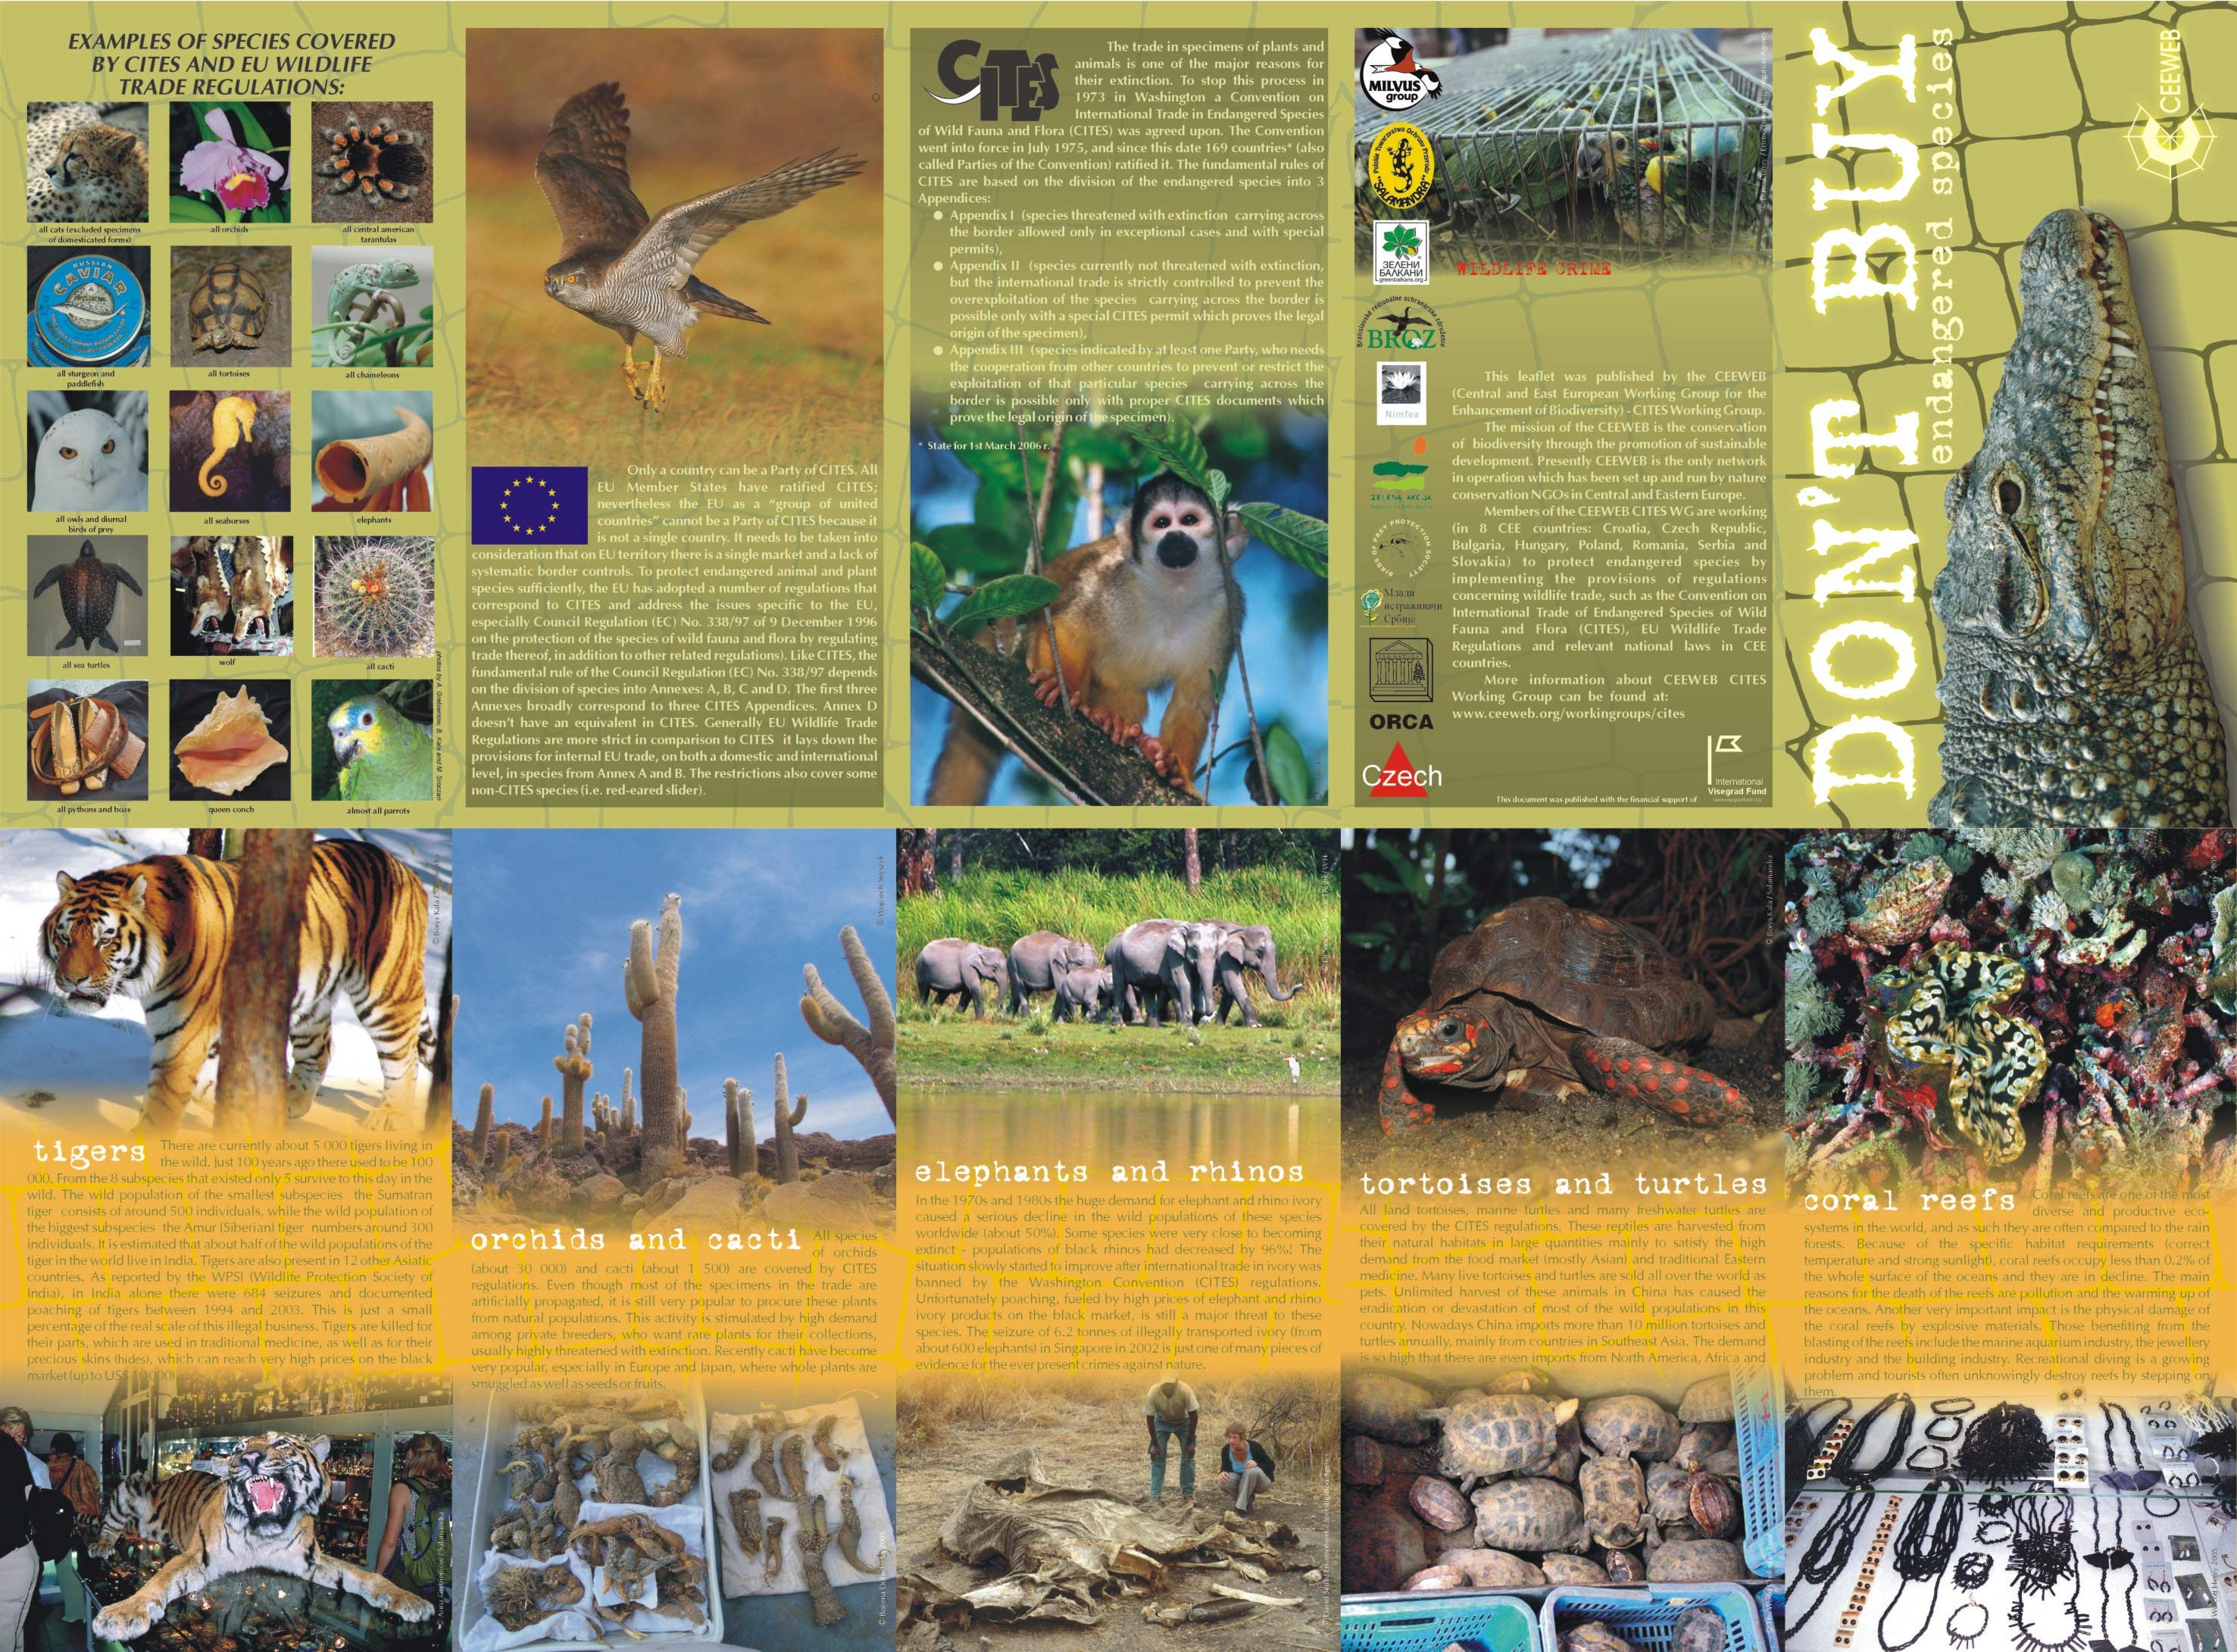 endangered animals essay conclusion These animals are endangered, and because of this the support for endangered animals is very crucial.